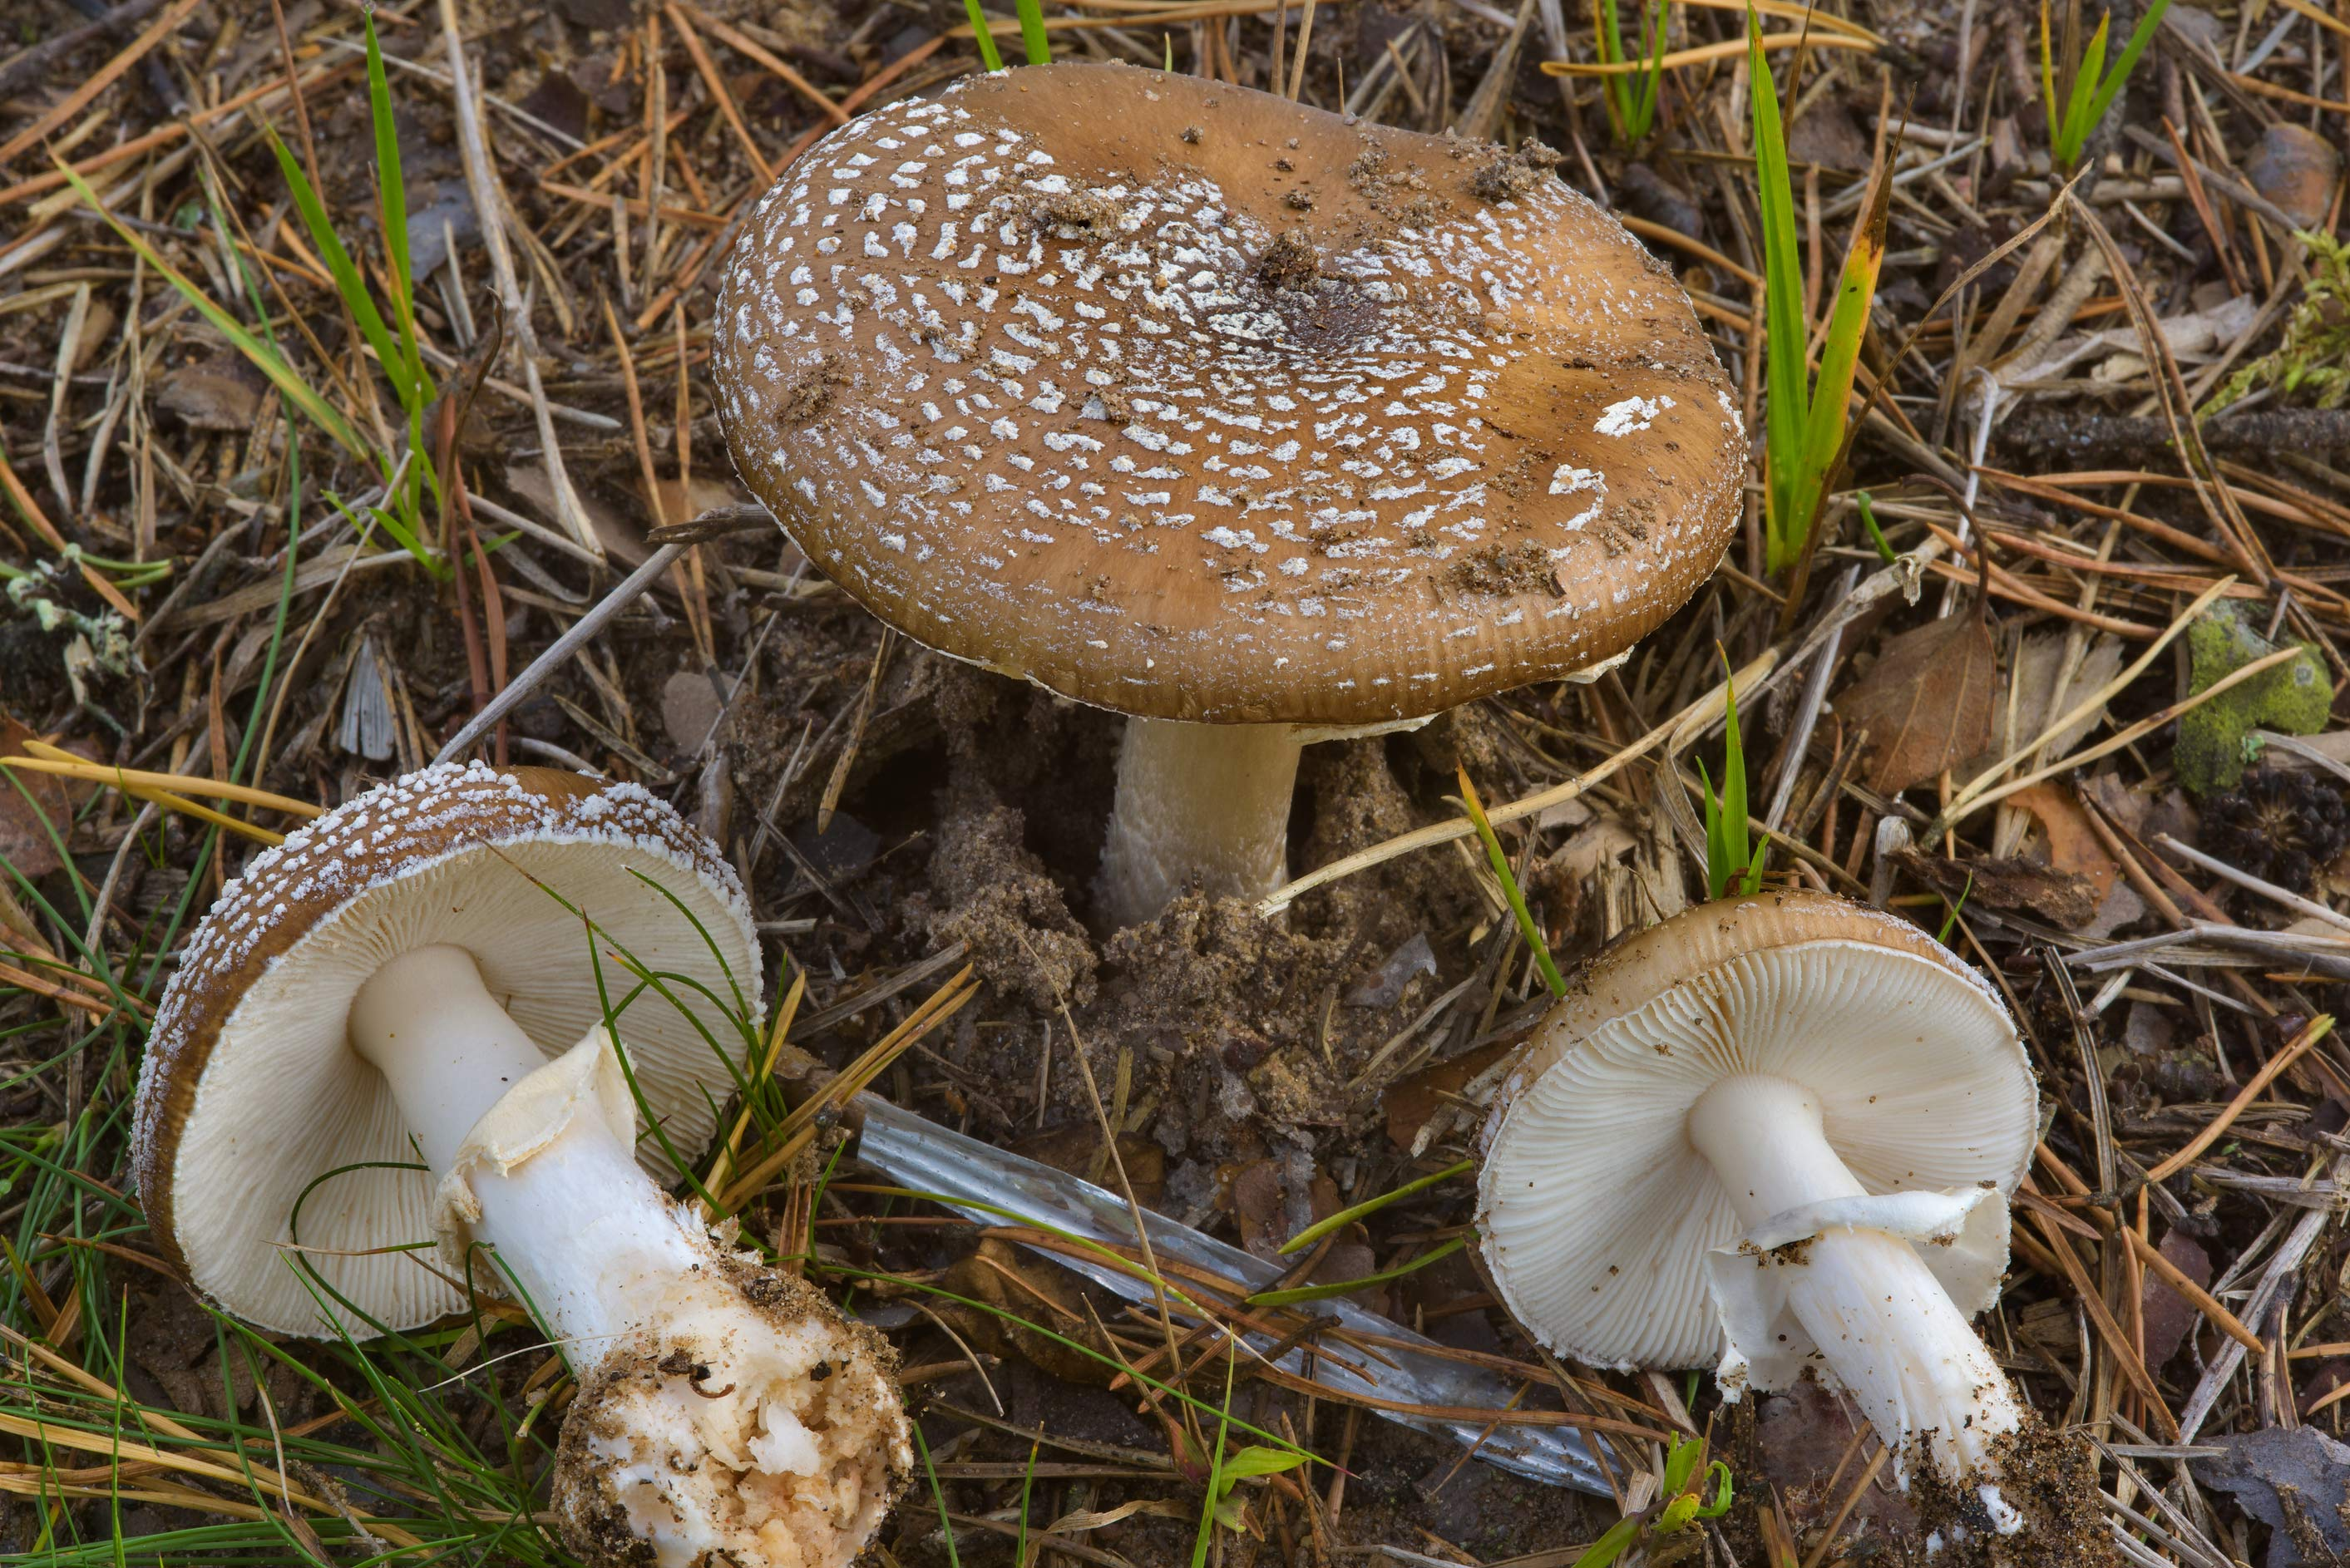 Panther cap mushrooms (Amanita pantherina) near...miles north from St.Petersburg. Russia